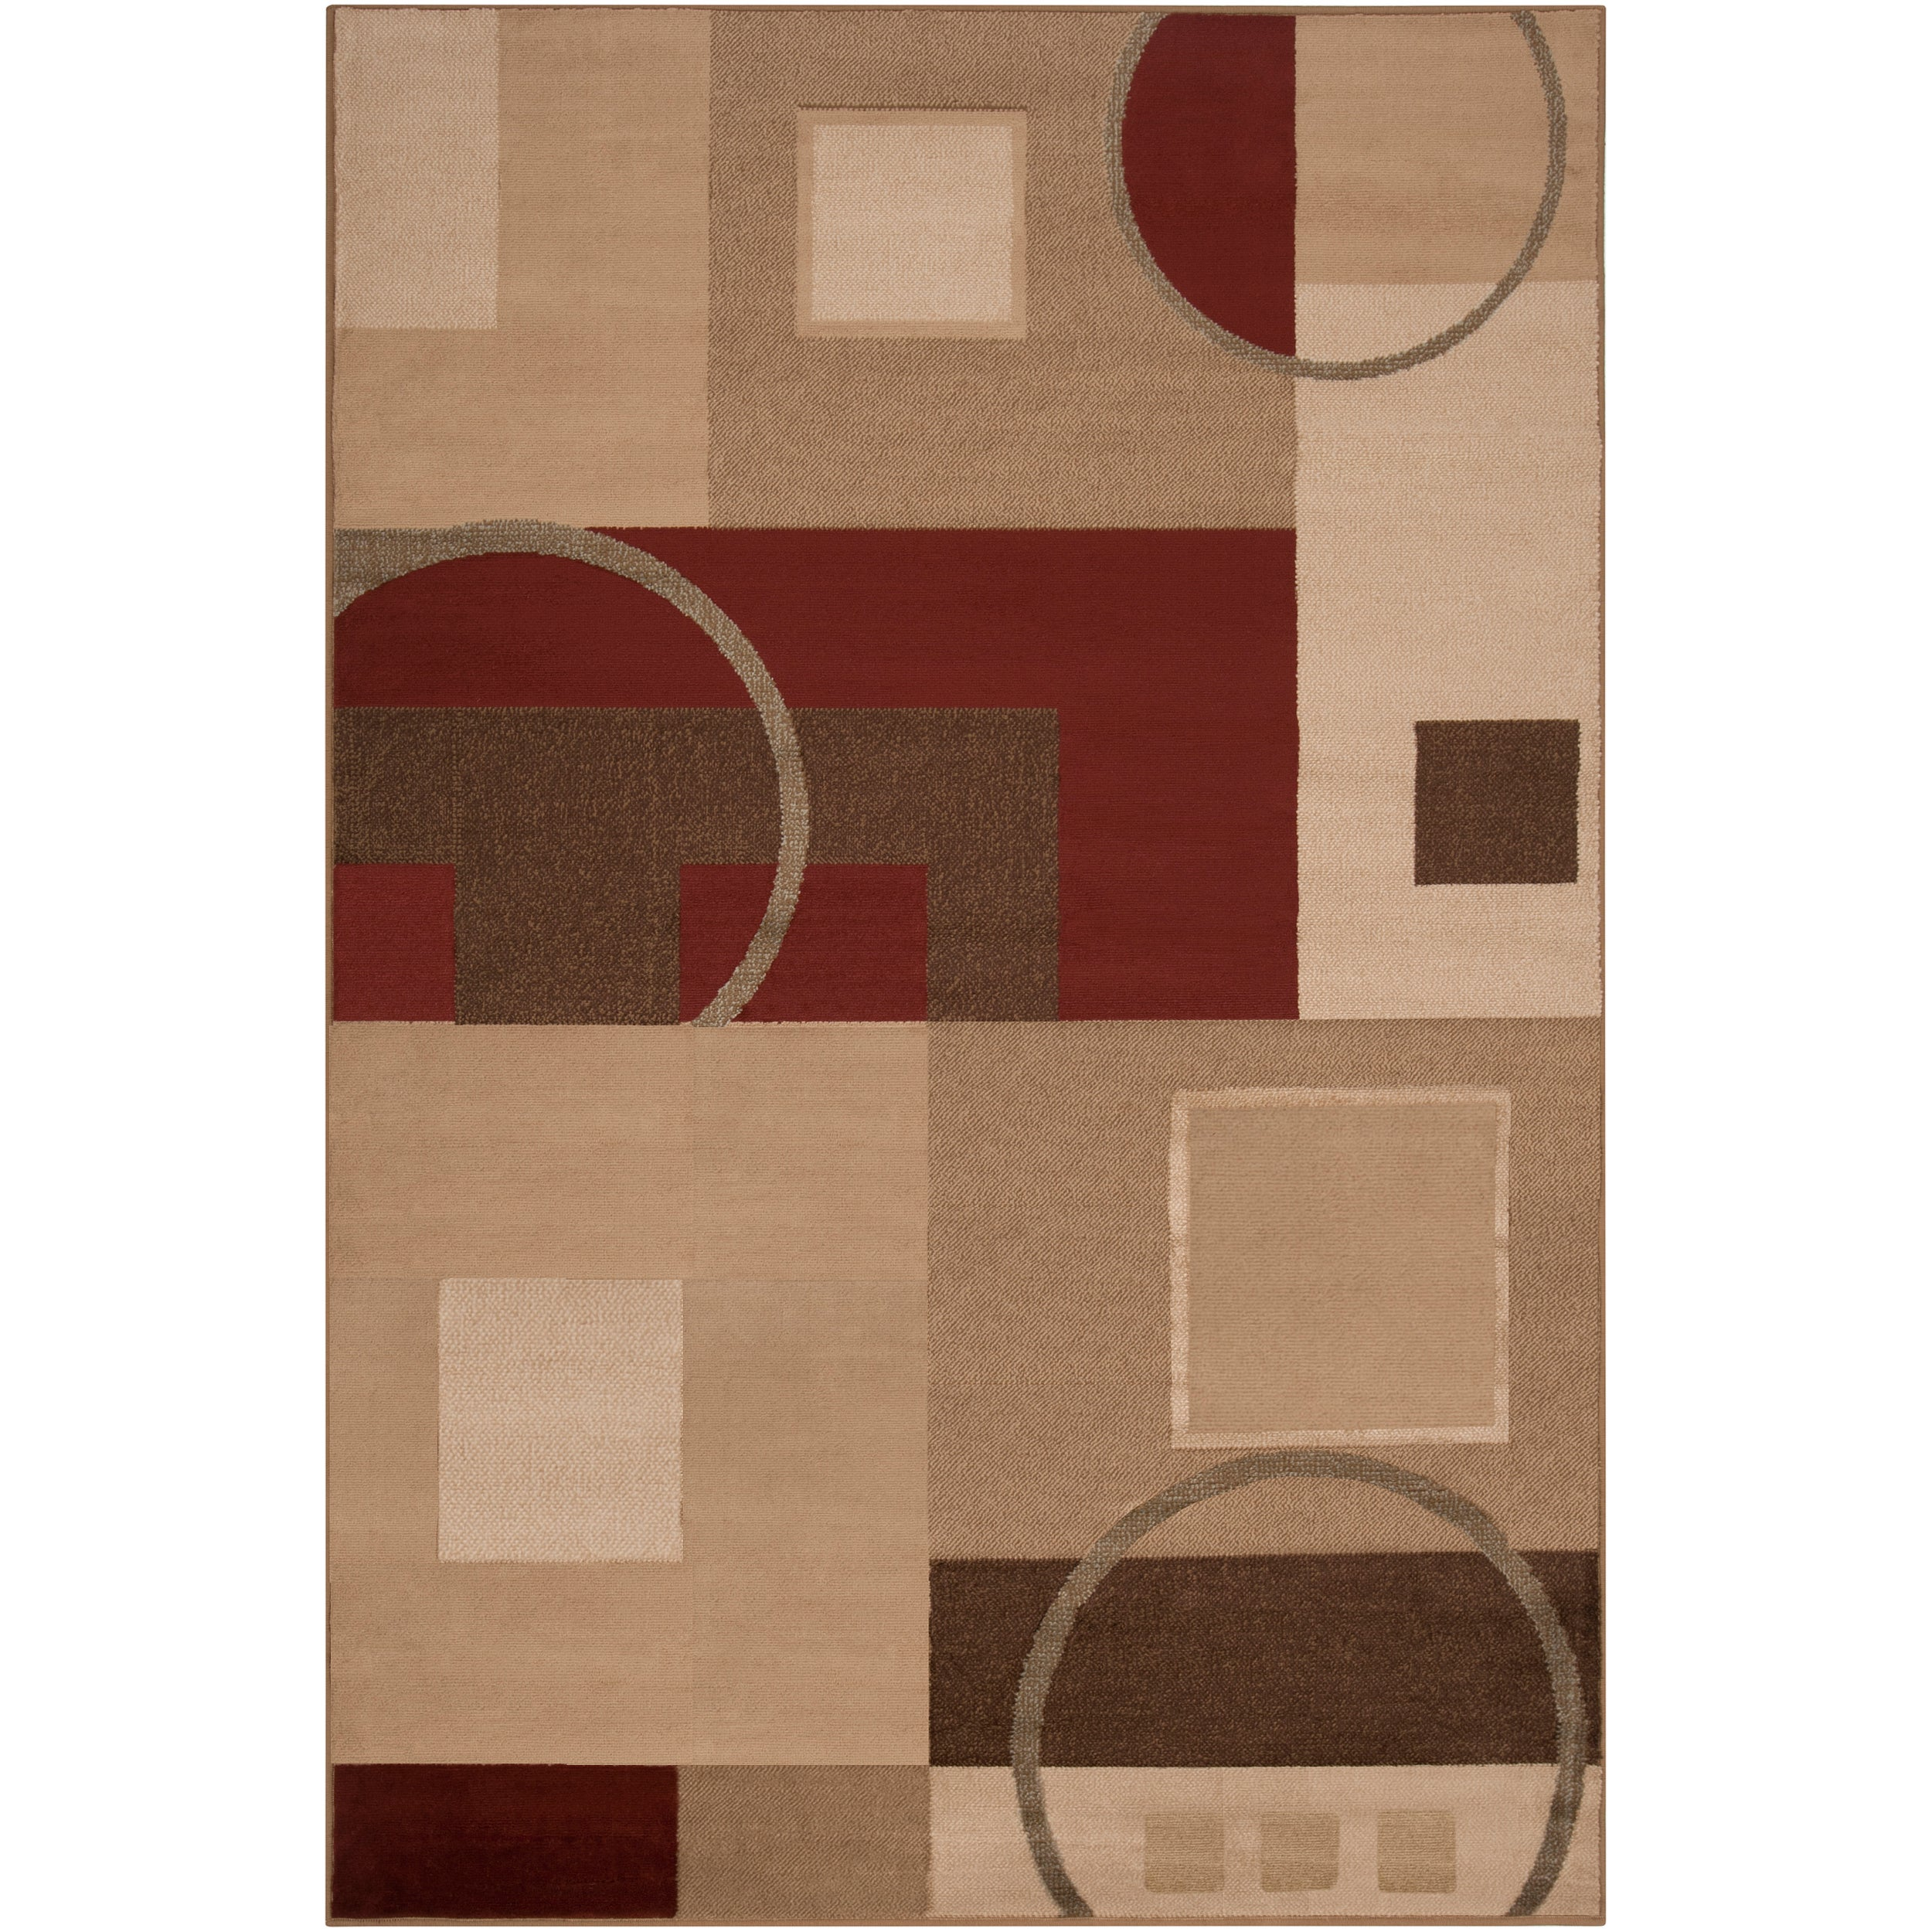 Curricabark Orange Rug (2' x 3')